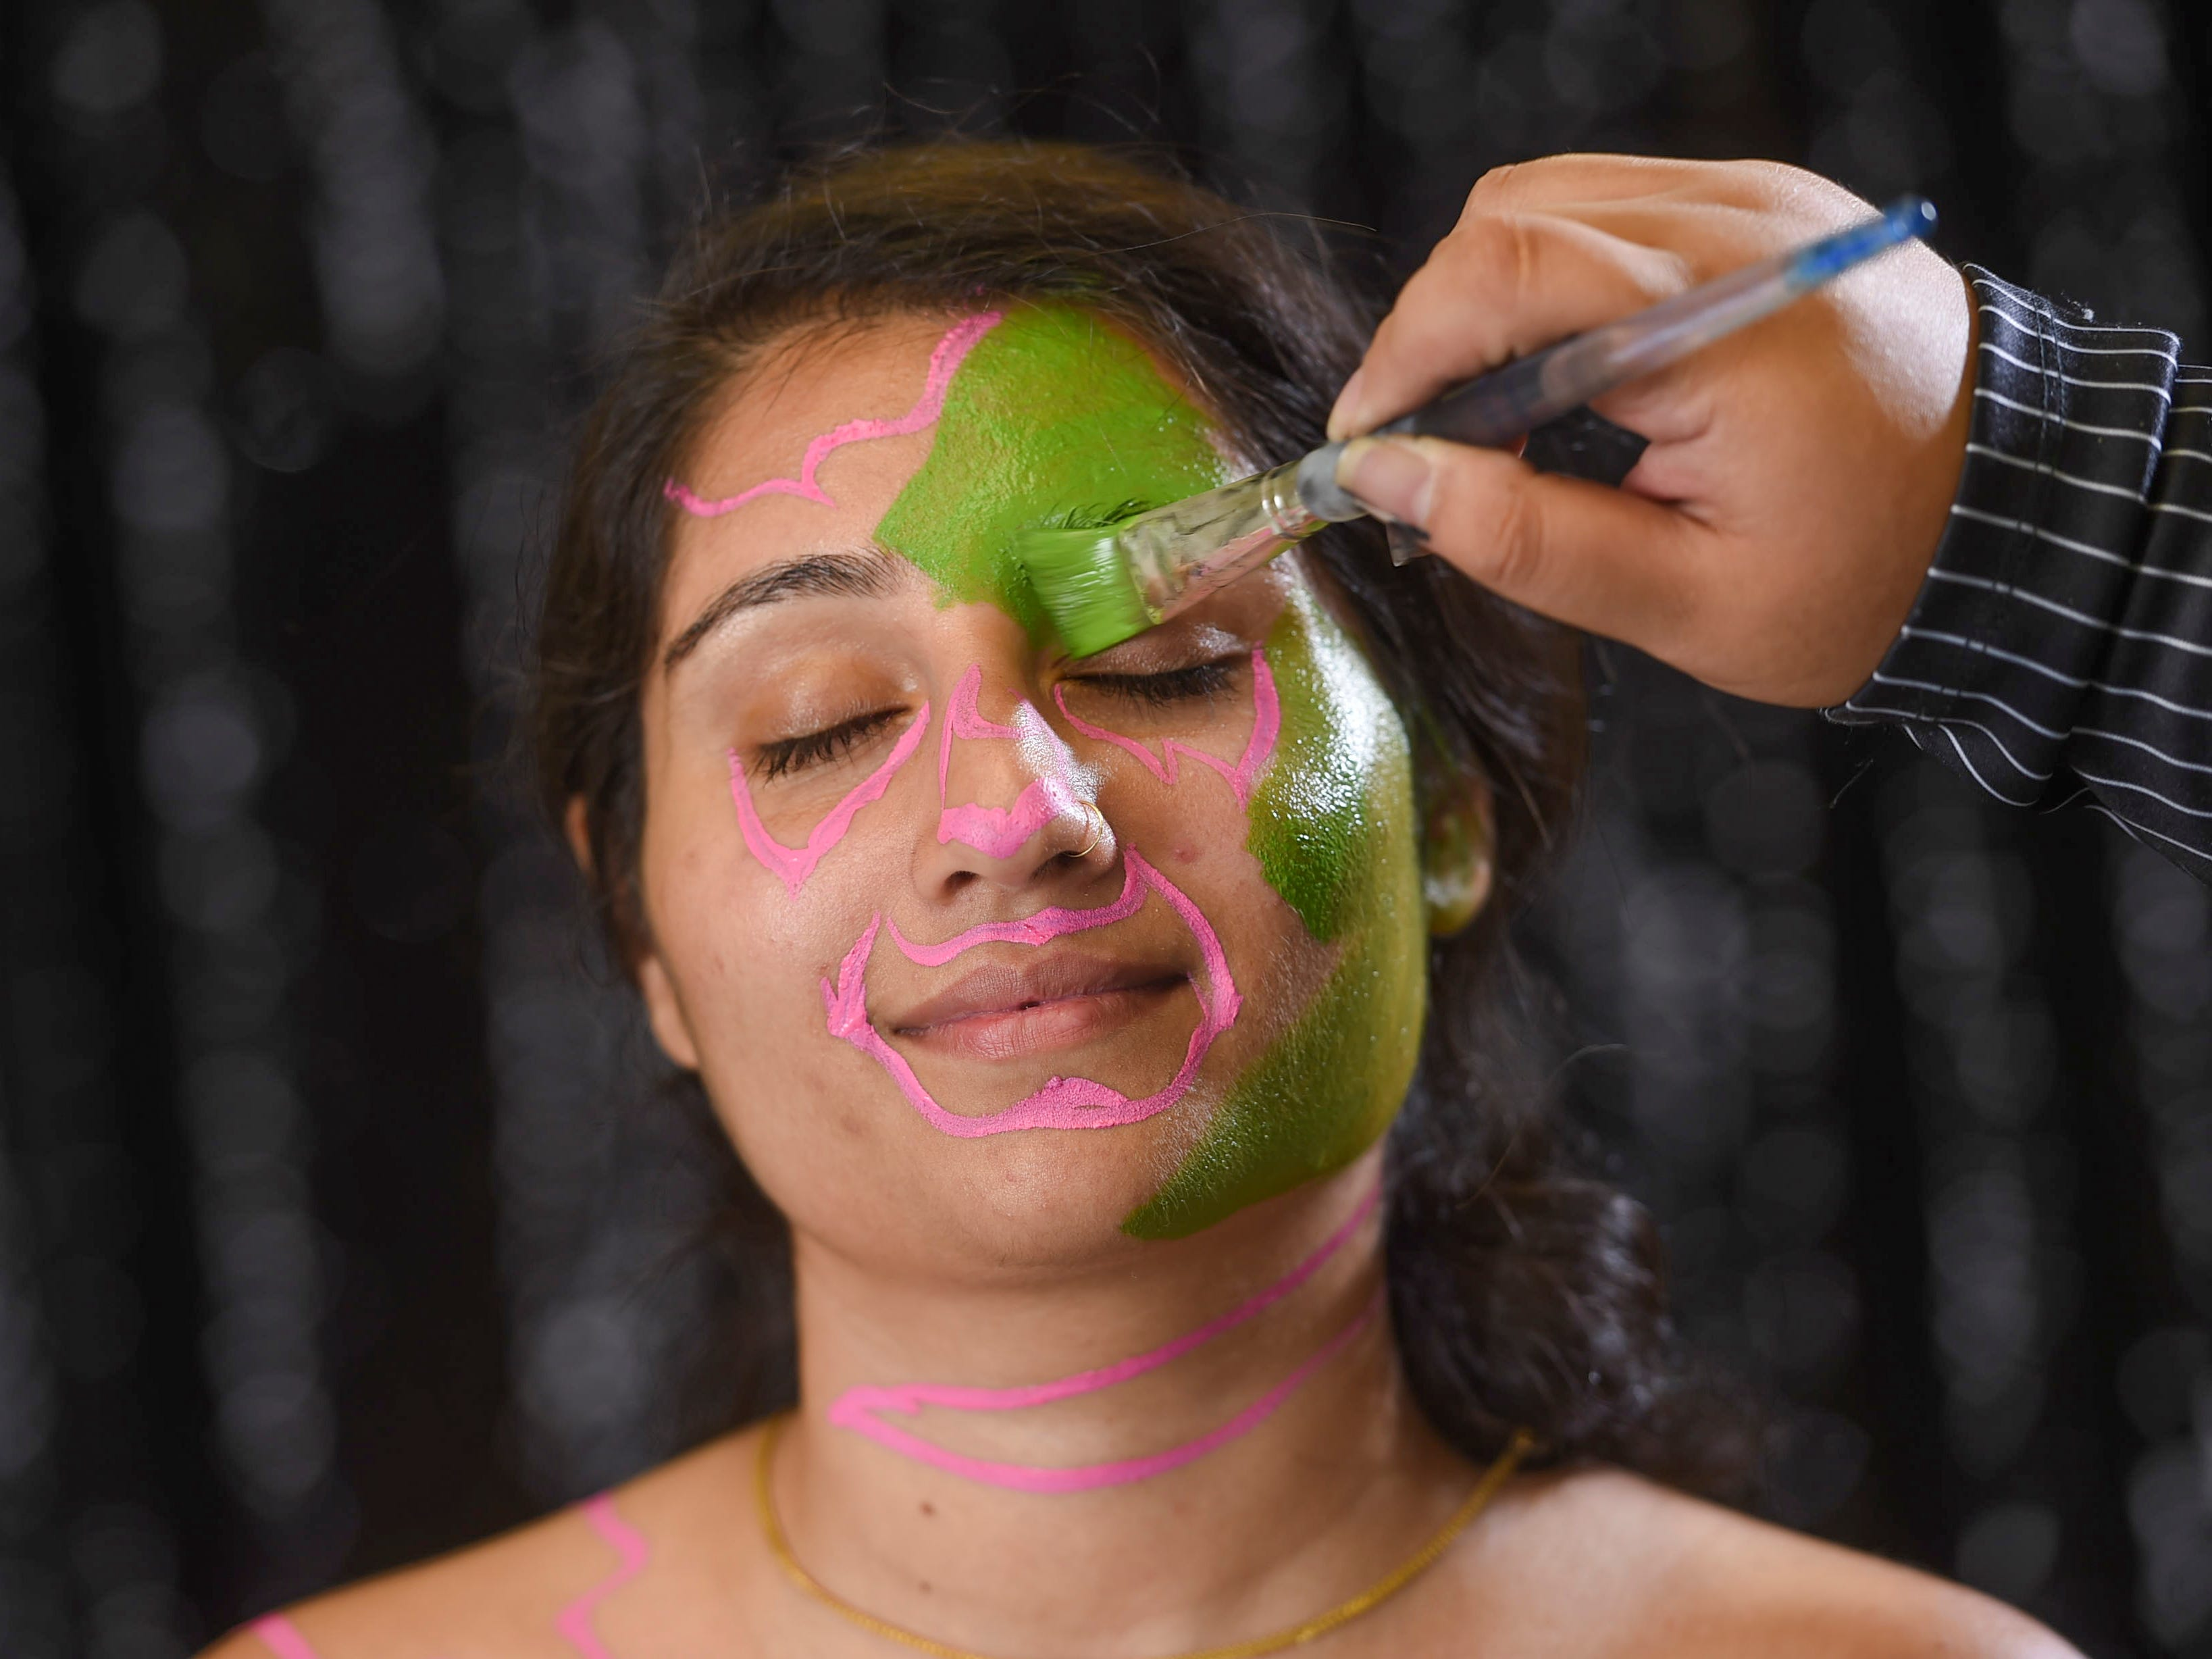 After the pink paint dries, fill in the face and body with green water-based face paint using a thicker paintbrush.